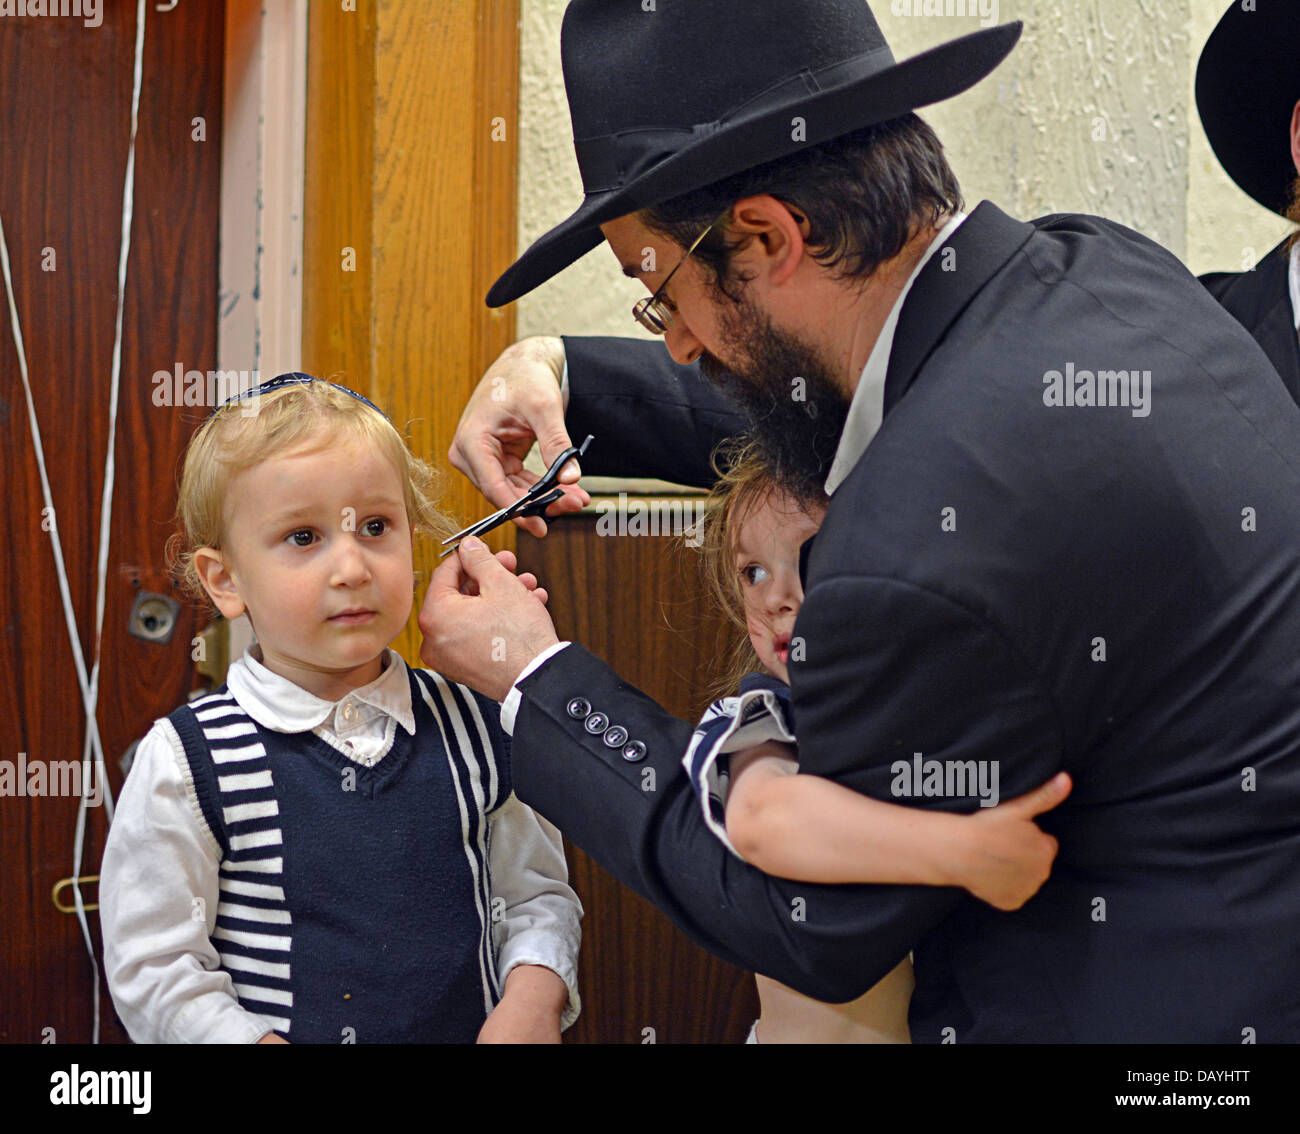 A 3 Year Old Religious Jewish Boy Getting His First Haircut At A